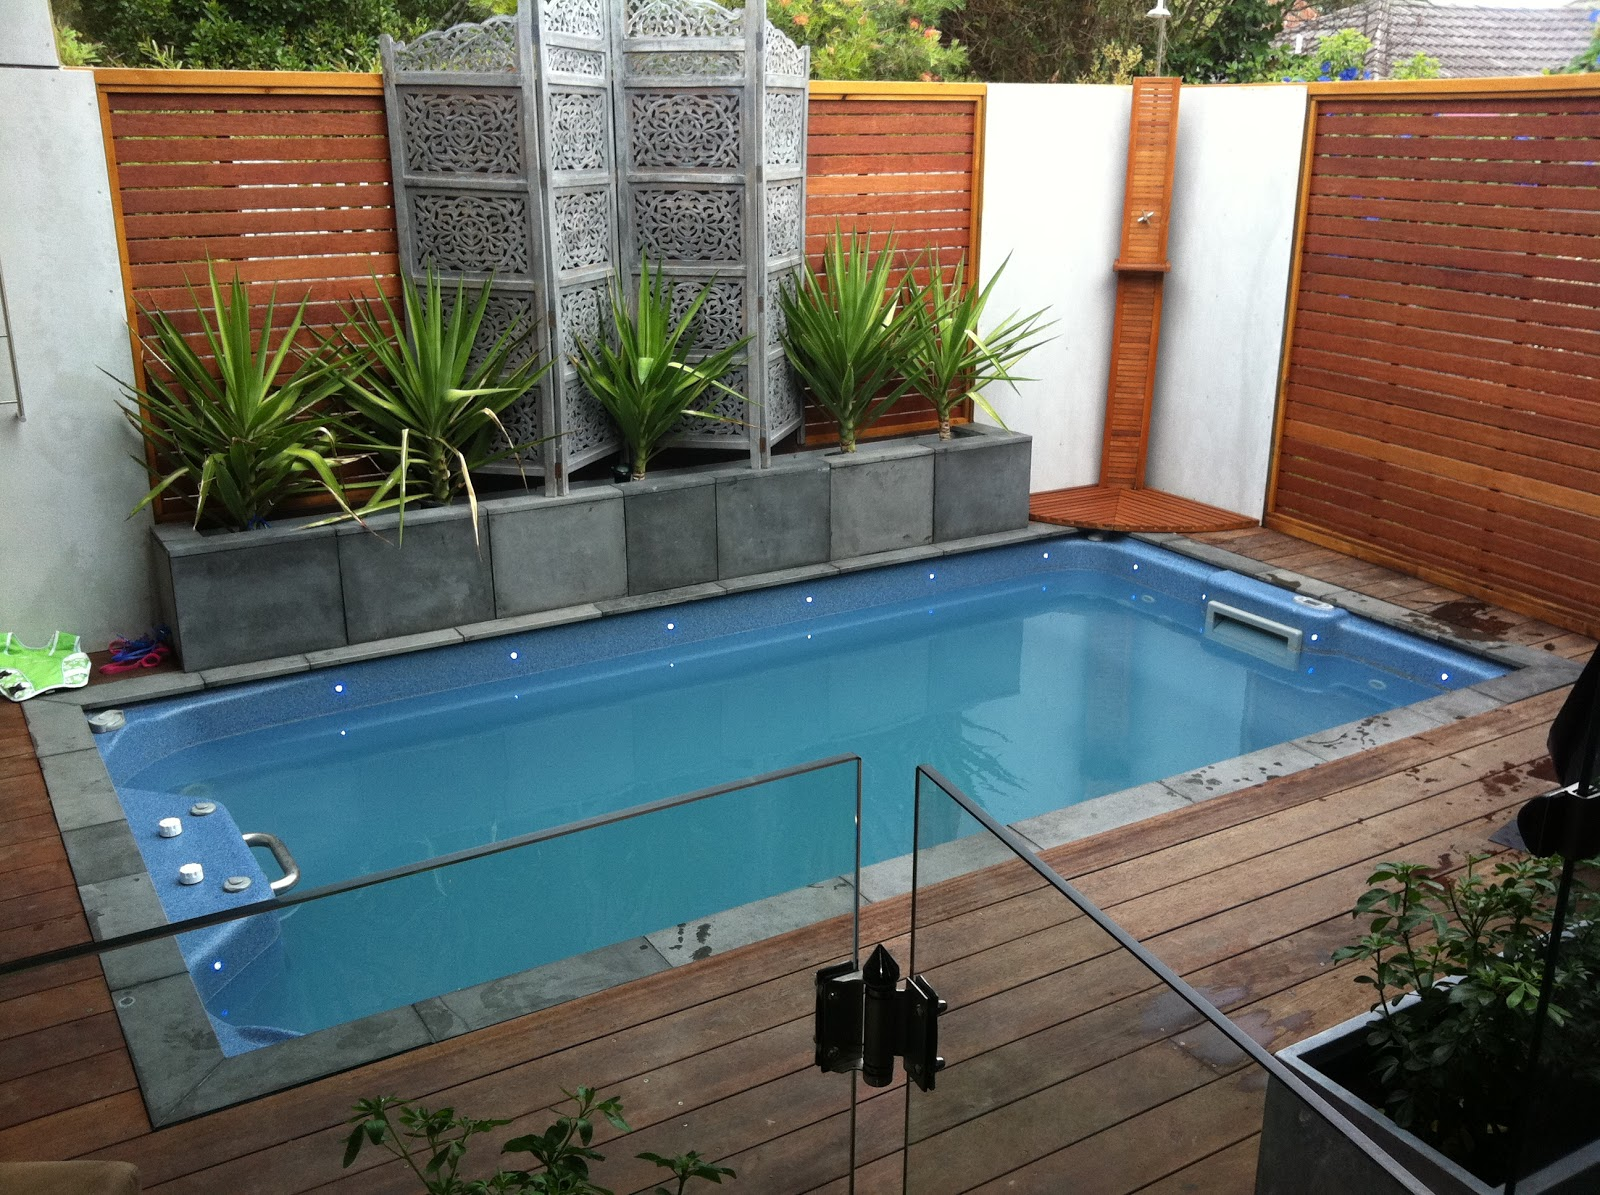 Endless spas swim spas featured in small backyards - Endless pools swim spa owner s manual ...